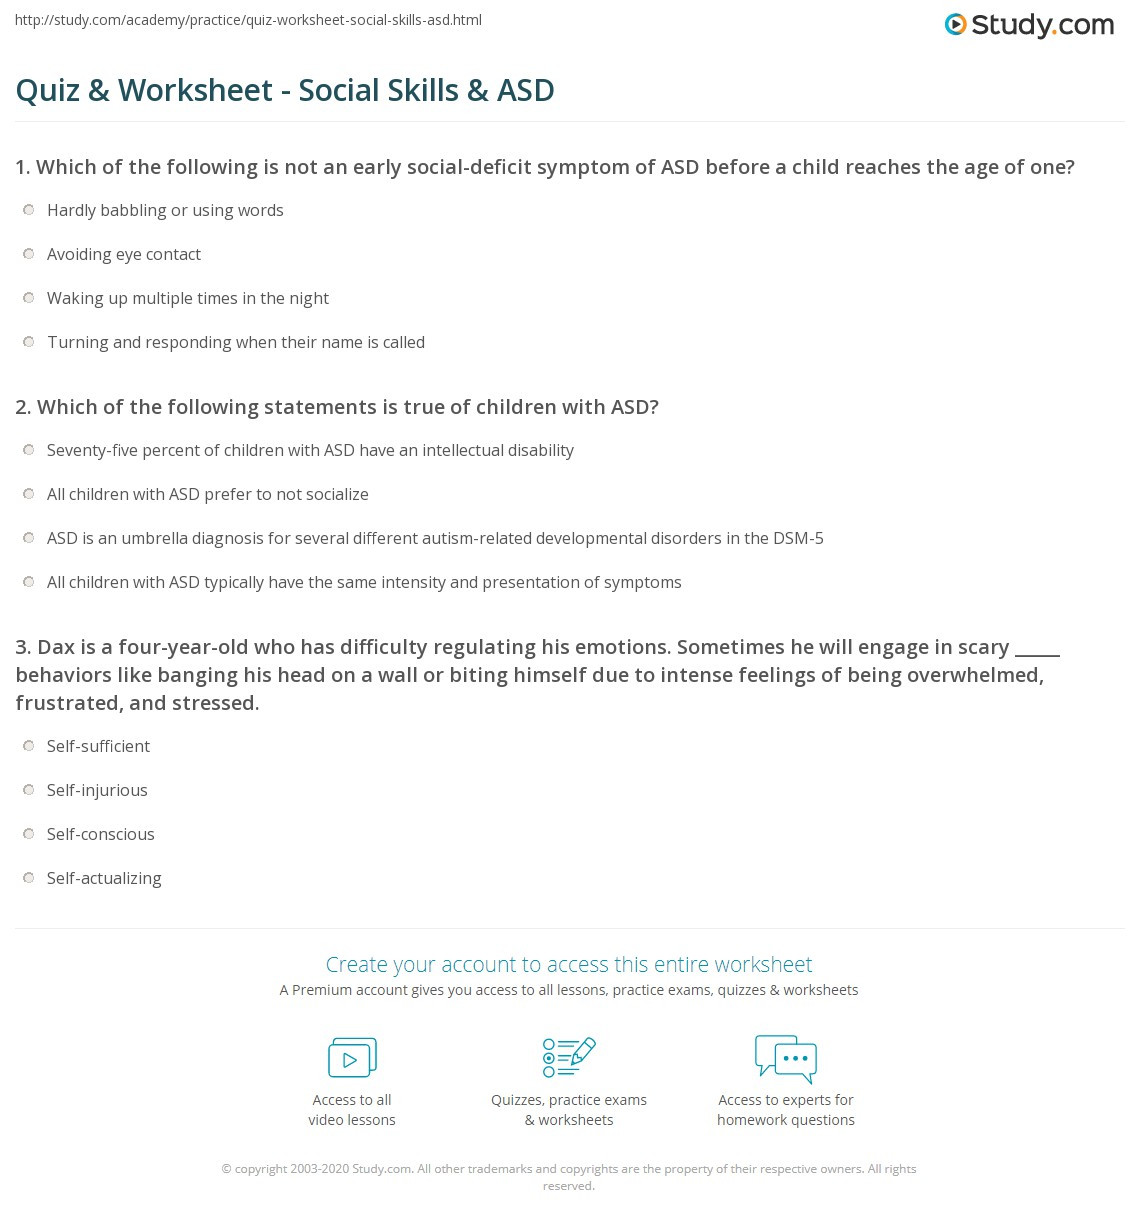 Social Skills Worksheets for Autism Quiz & Worksheet social Skills & asd